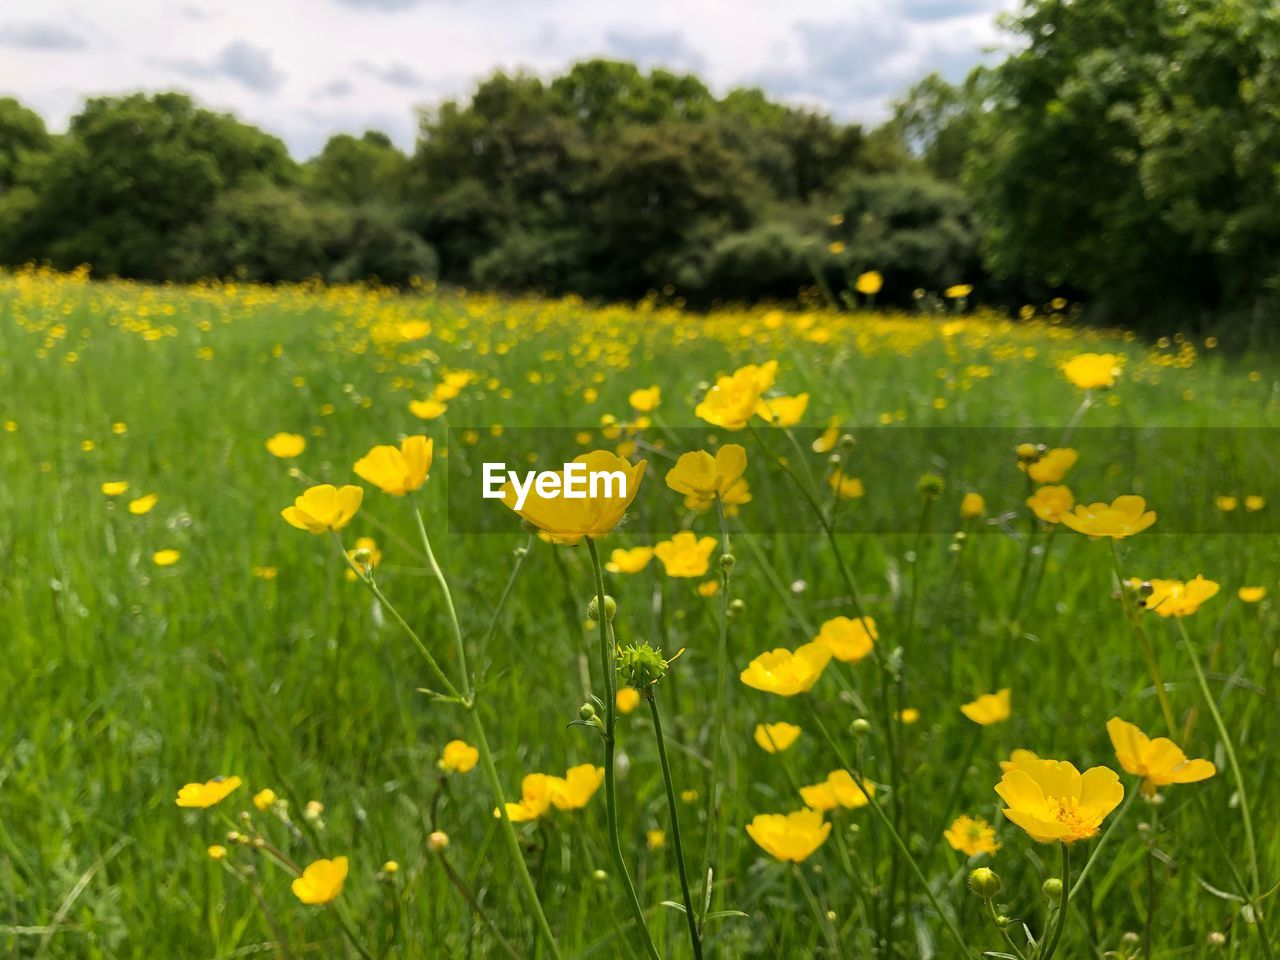 VIEW OF YELLOW FLOWERS GROWING IN FIELD